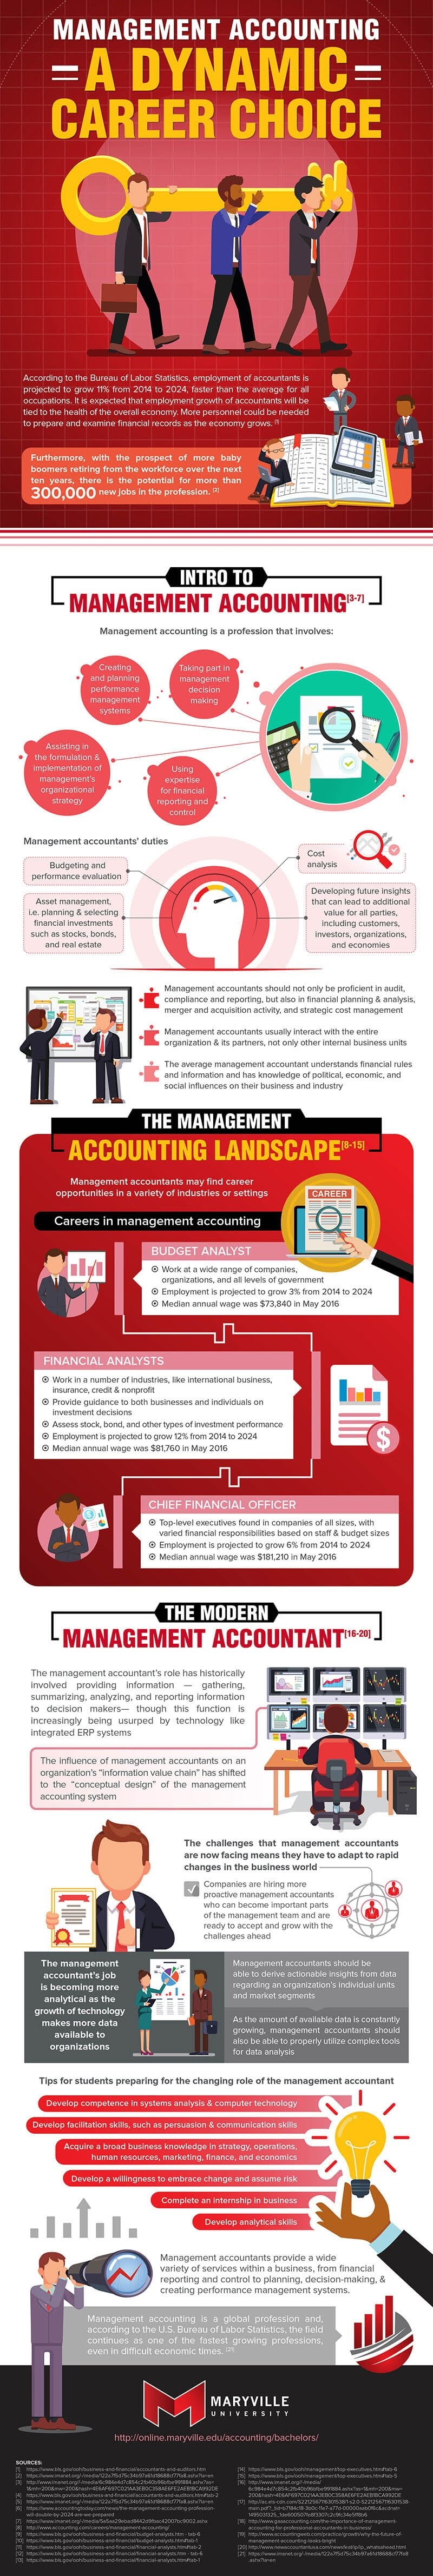 Management Accounting Careers #infographic